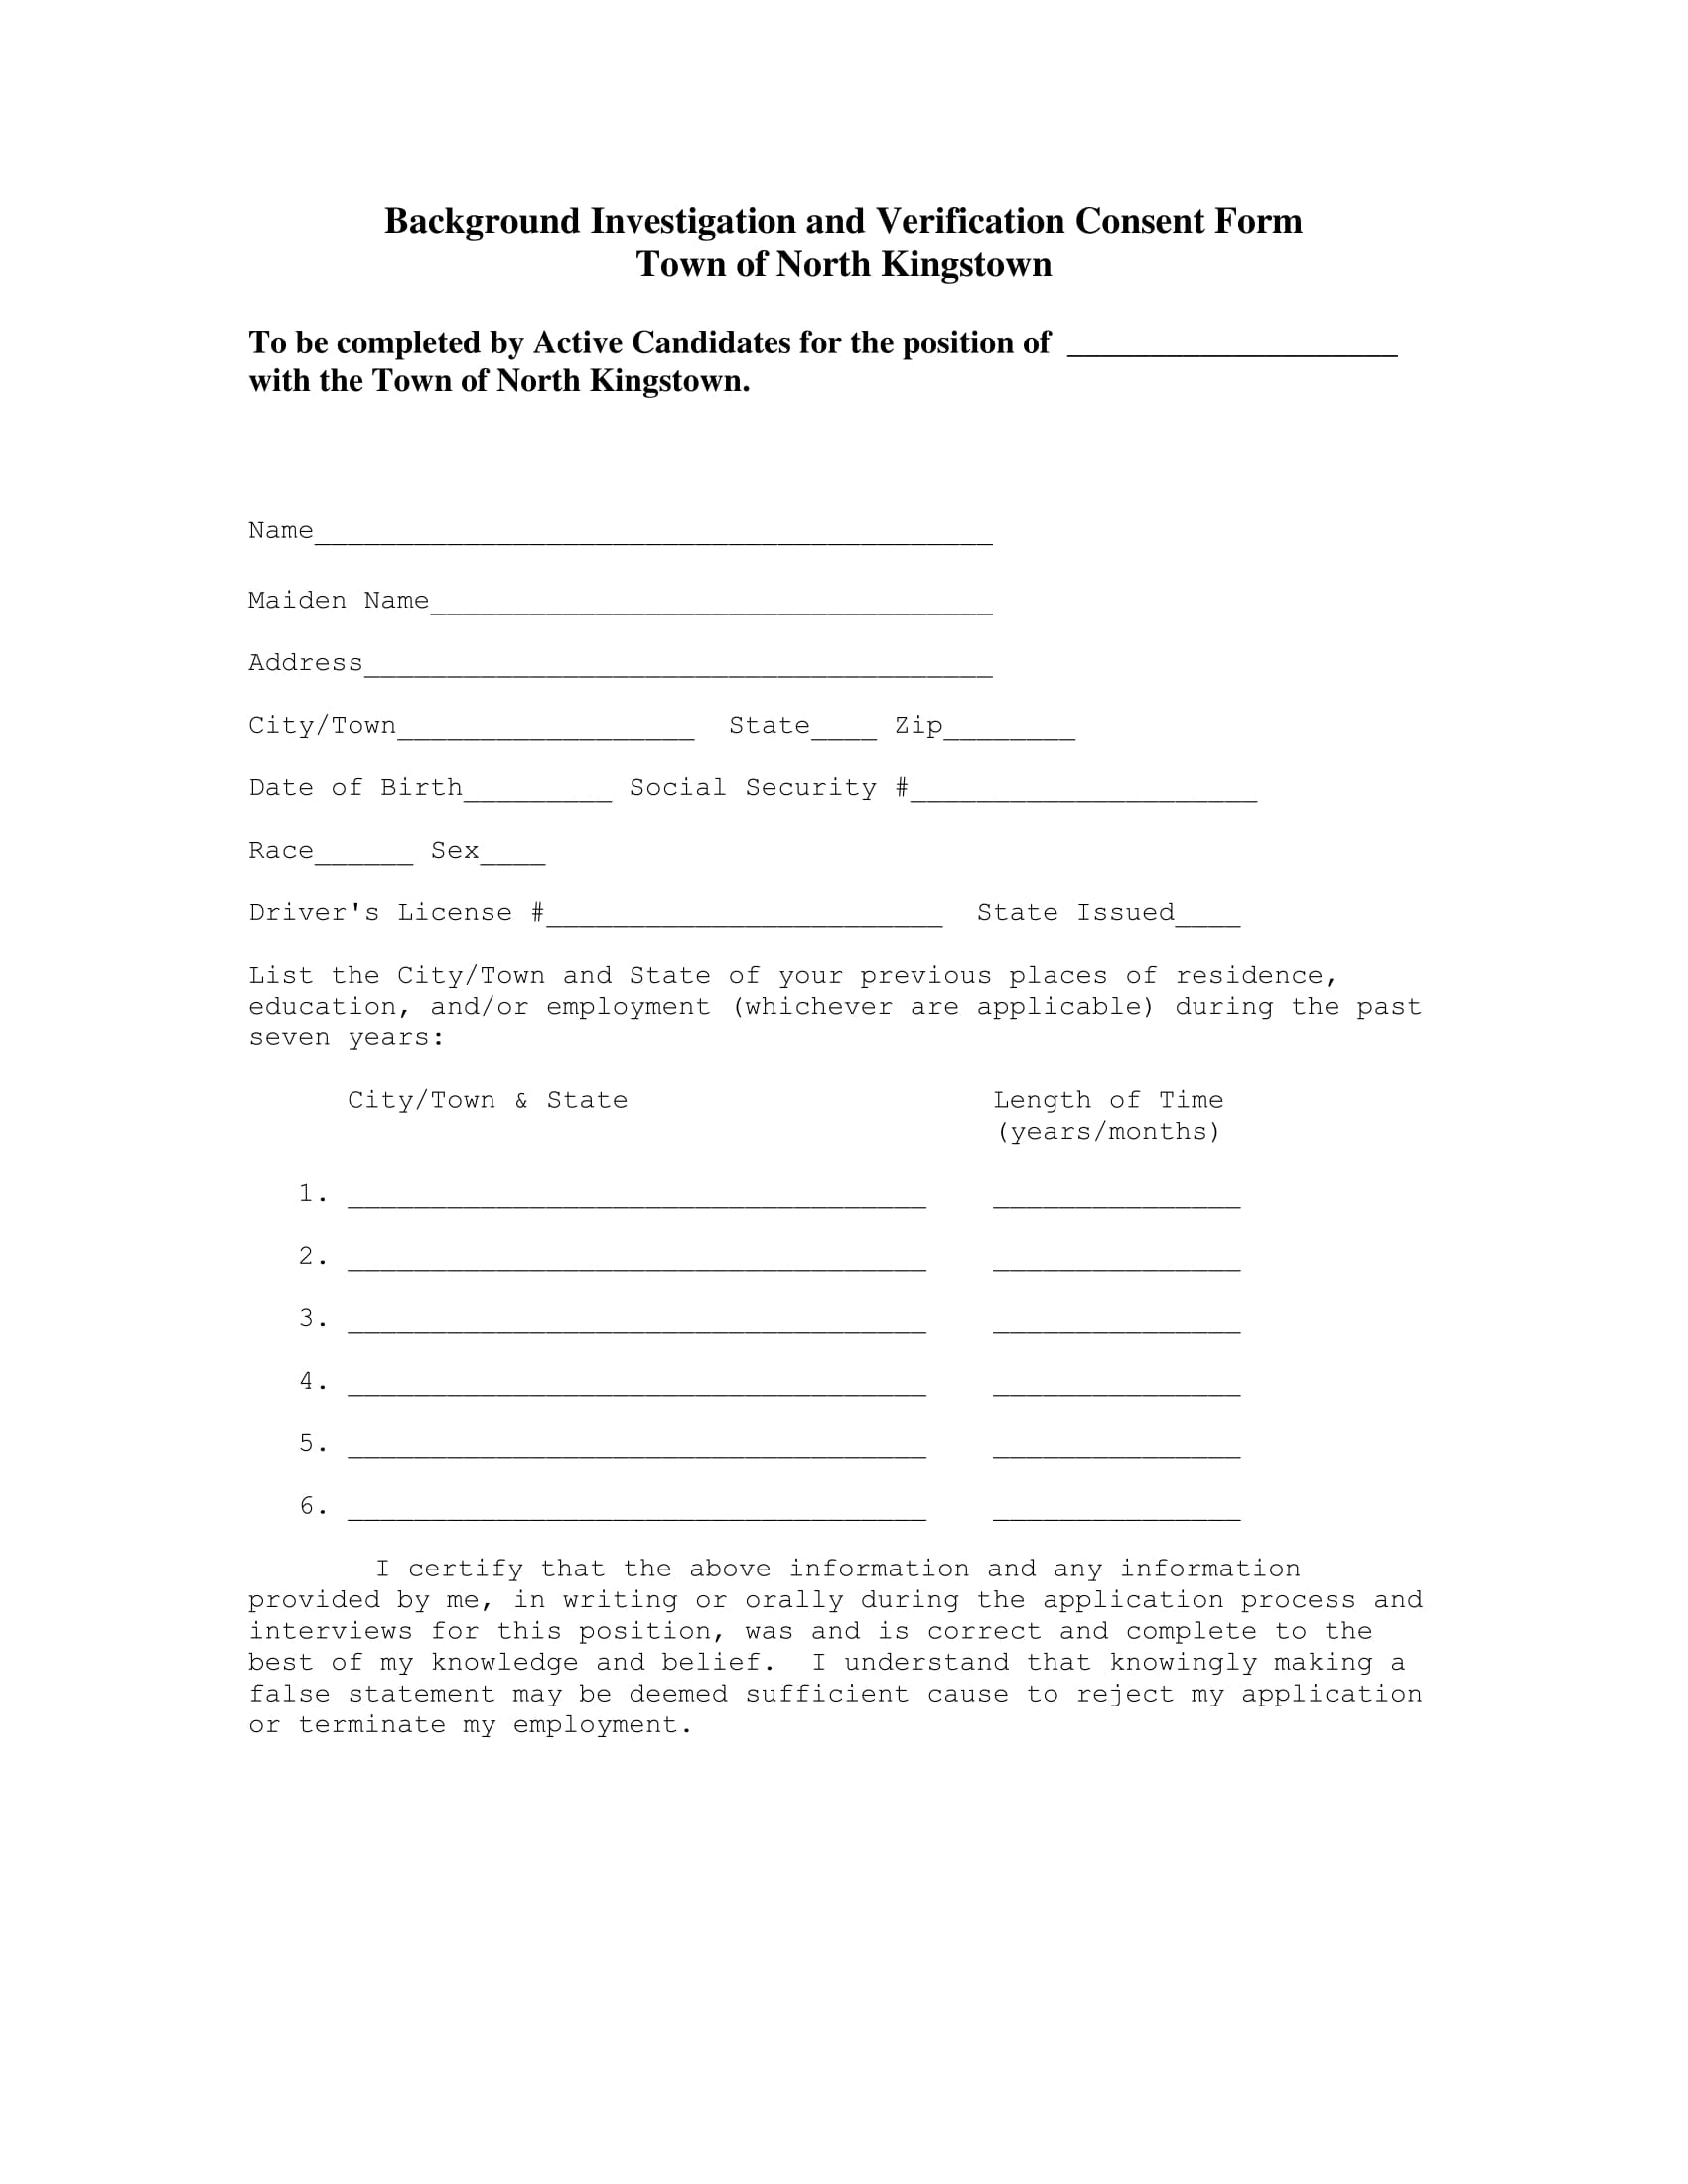 background verification consent form 1